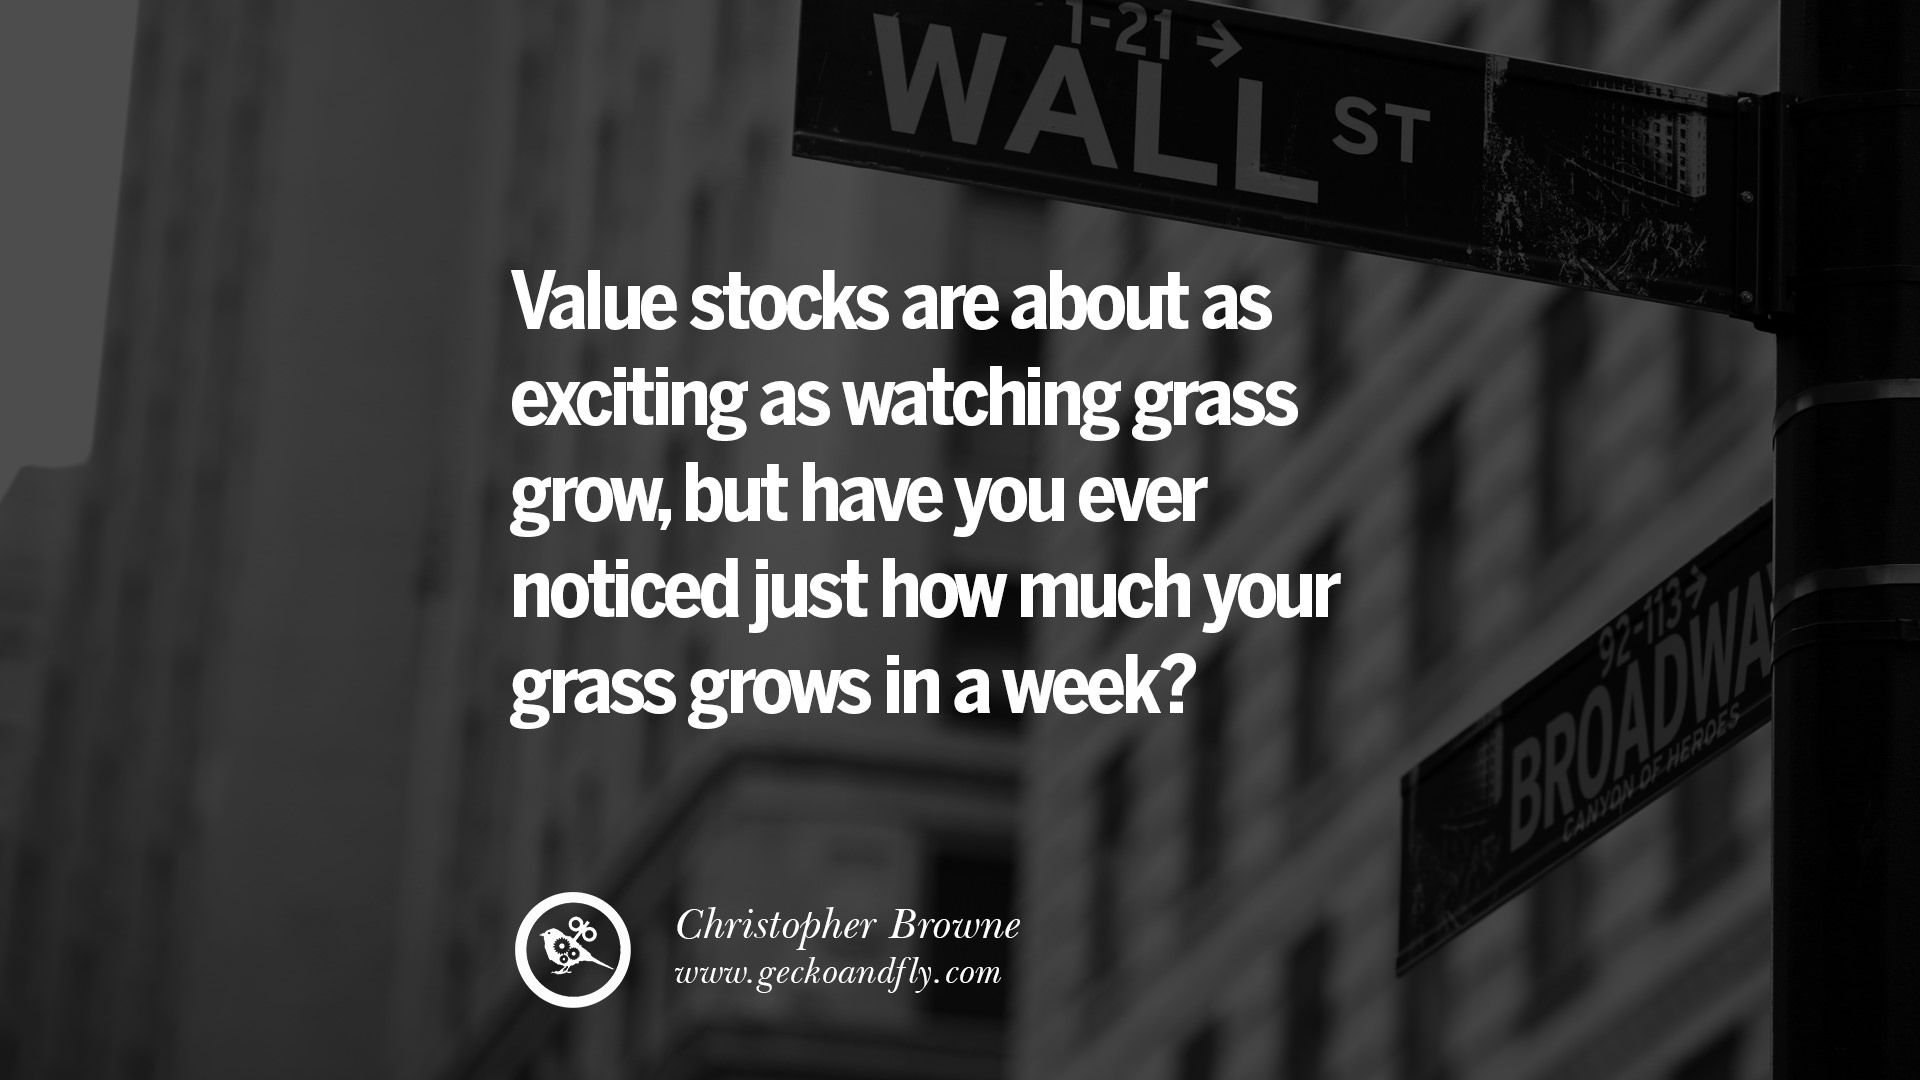 Https Cdn4 Geckoandfly Com Wp Content Uploads 2016 01 Stock Market Quotes16 Jpg Investment Quotes Stock Market Investing